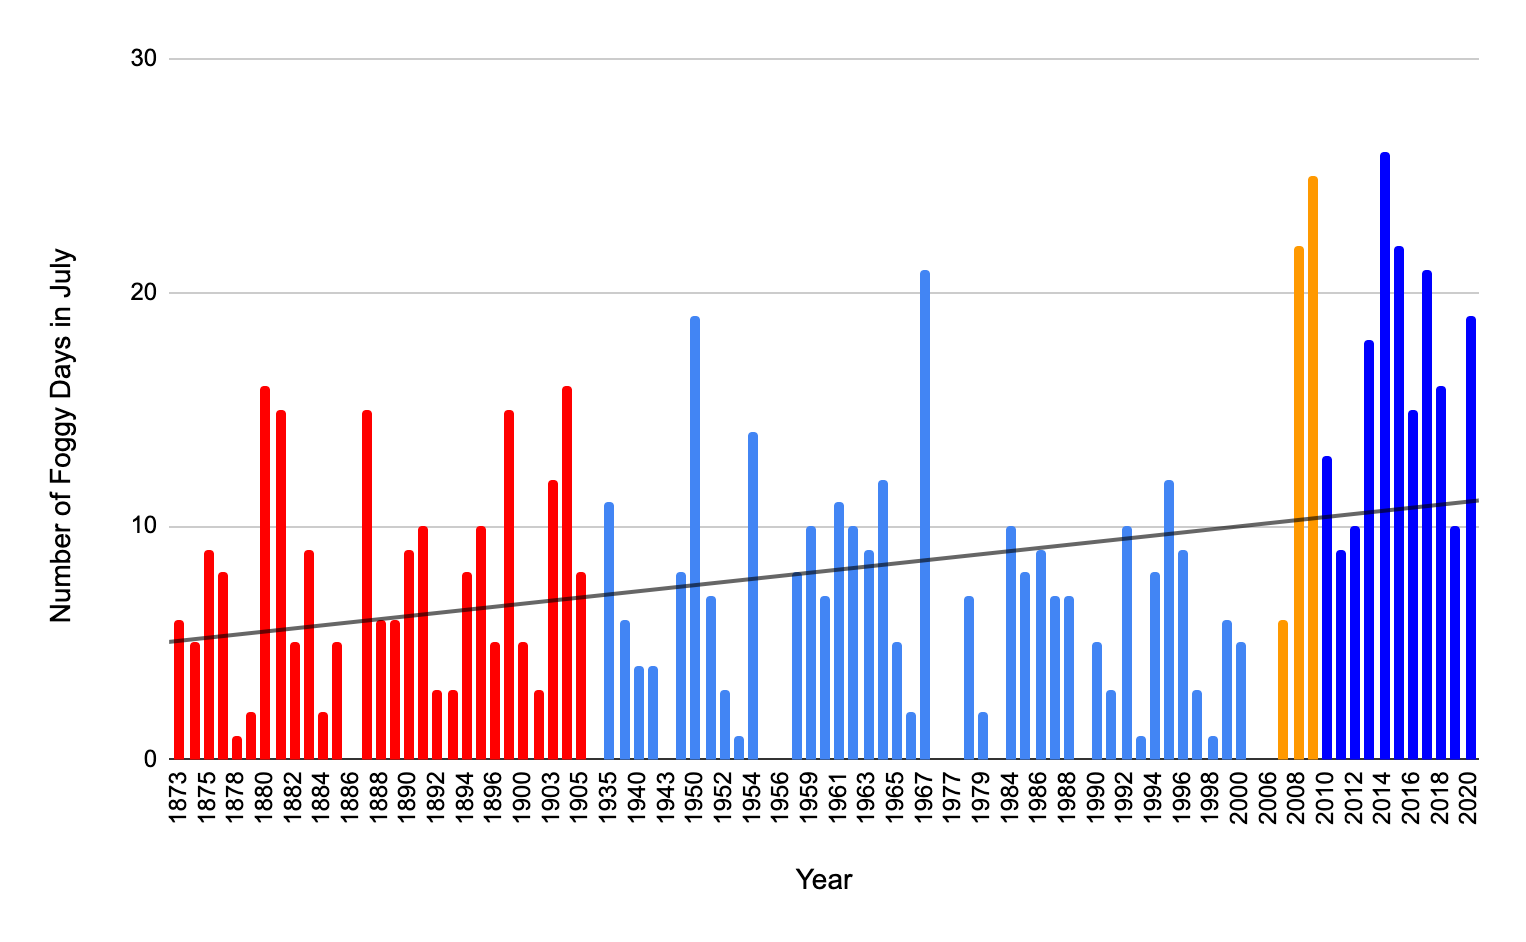 Bar chart with number of foggy days in July on y-axis and years on x-axis with trendline showing increase over time.